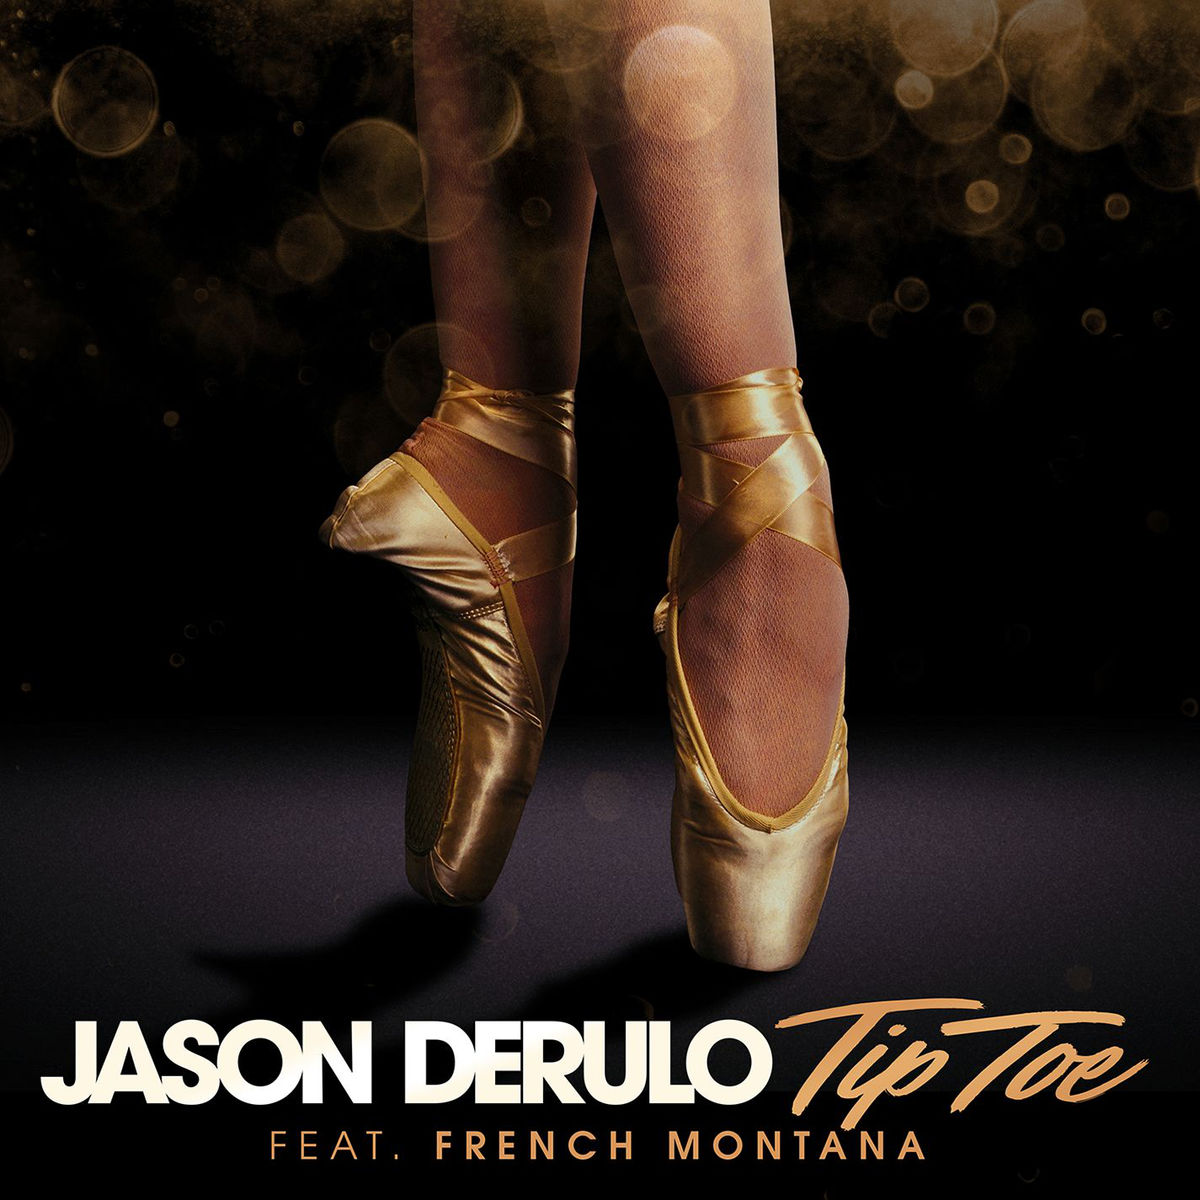 ultratop be - Jason Derulo feat  French Montana - Tip Toe